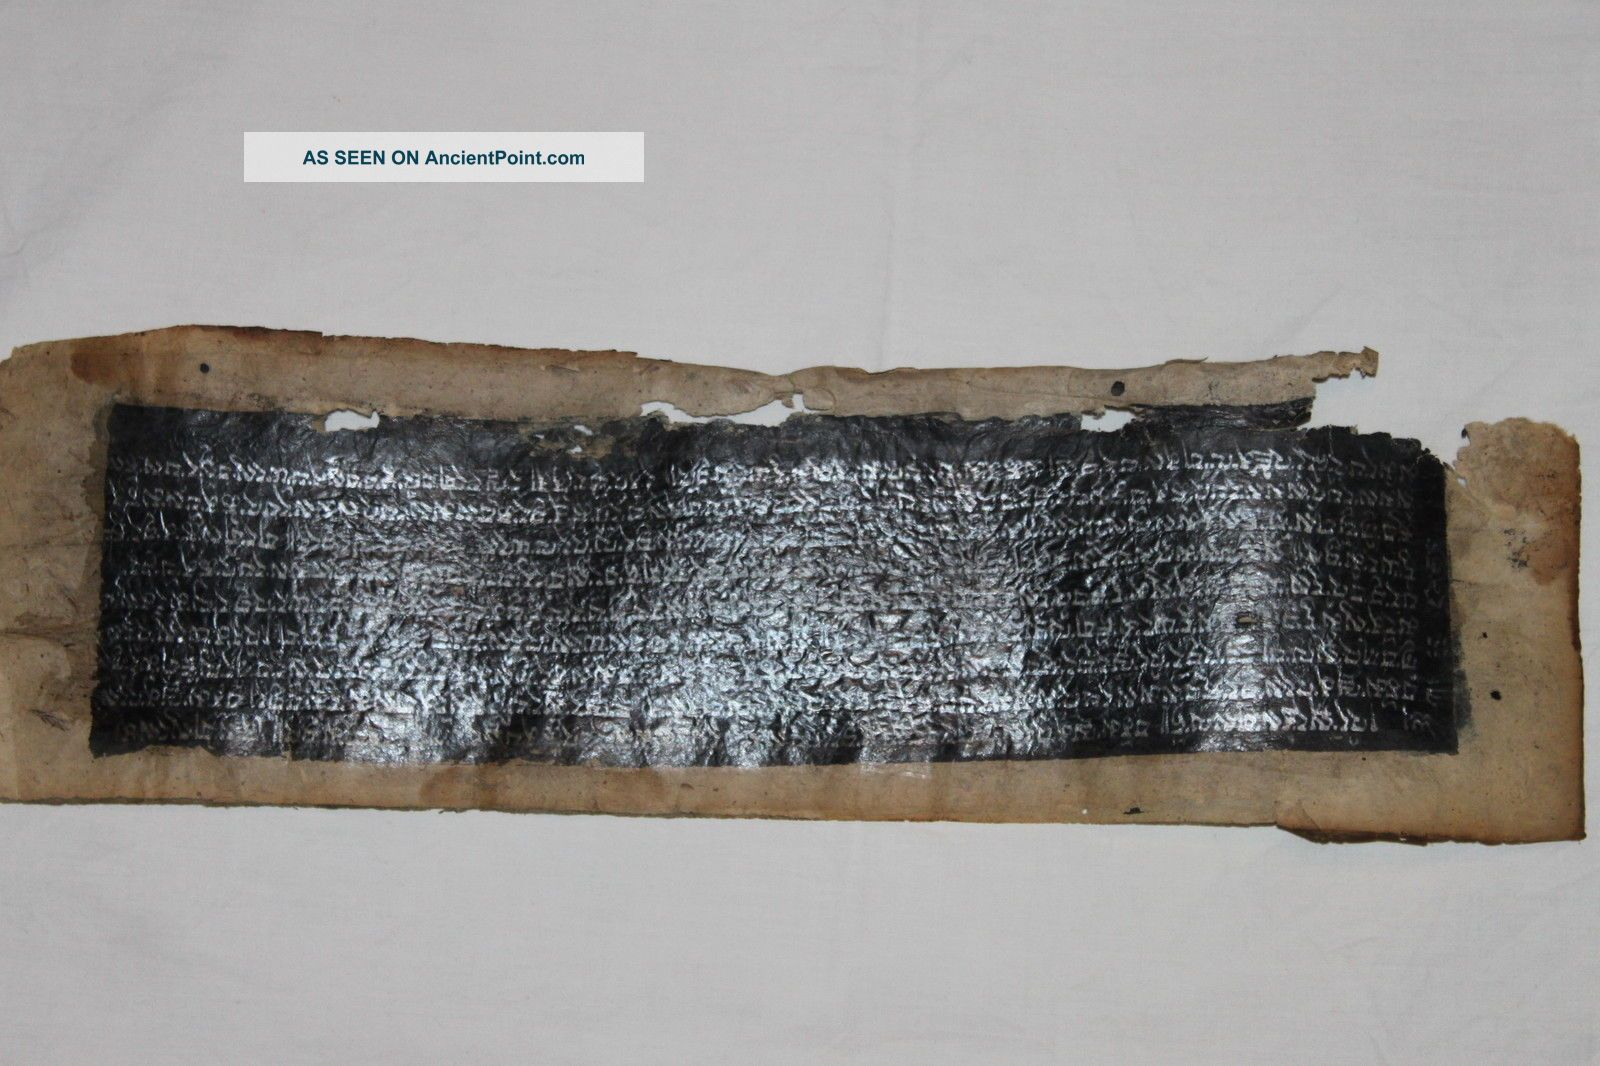 Buddhist Sutra Tibetan Pray Page 1700s Manuscript God Chinese photo